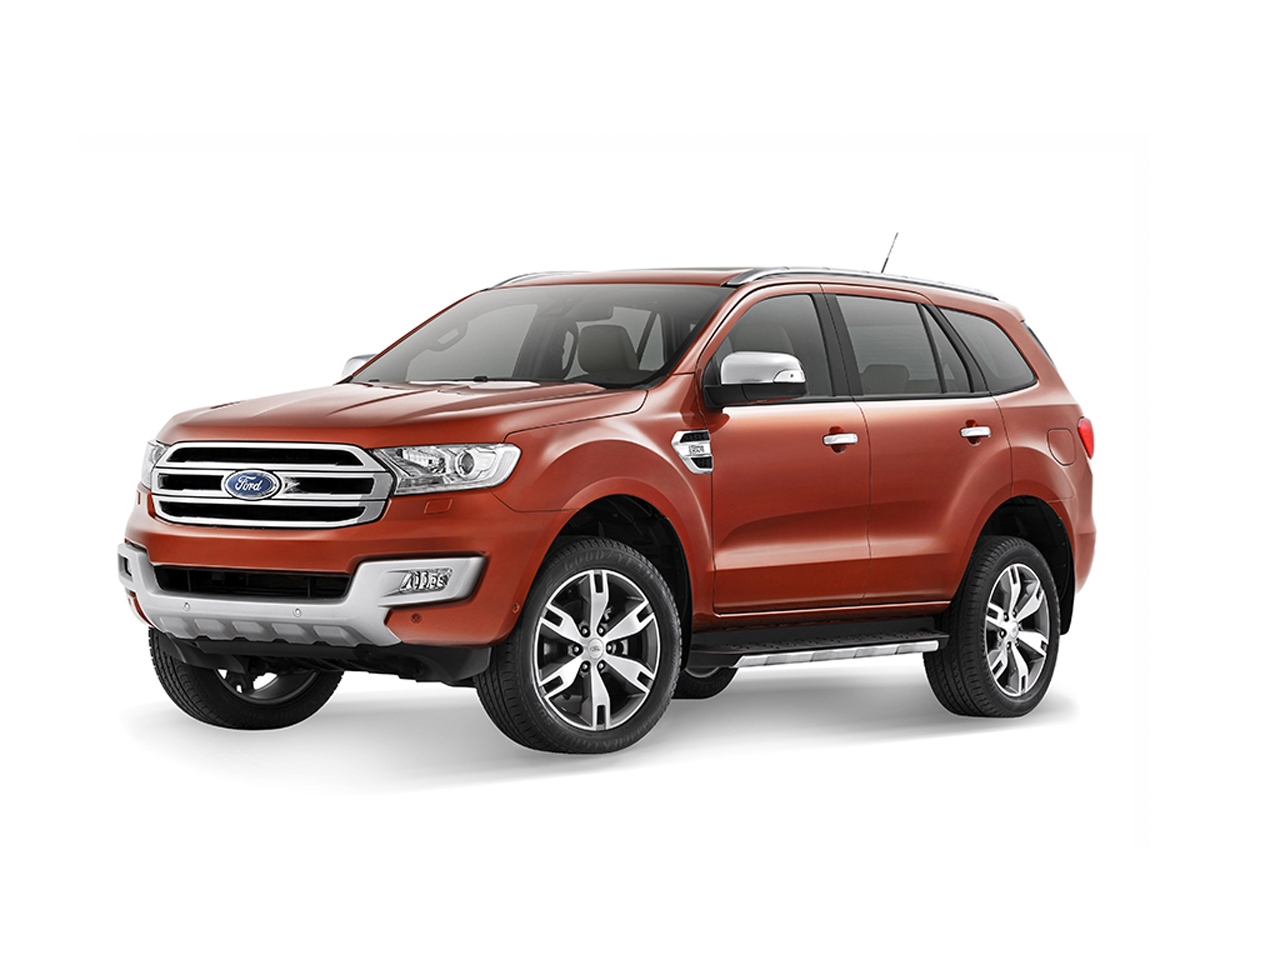 2015 Ford Everest Photo Gallery Autoblog